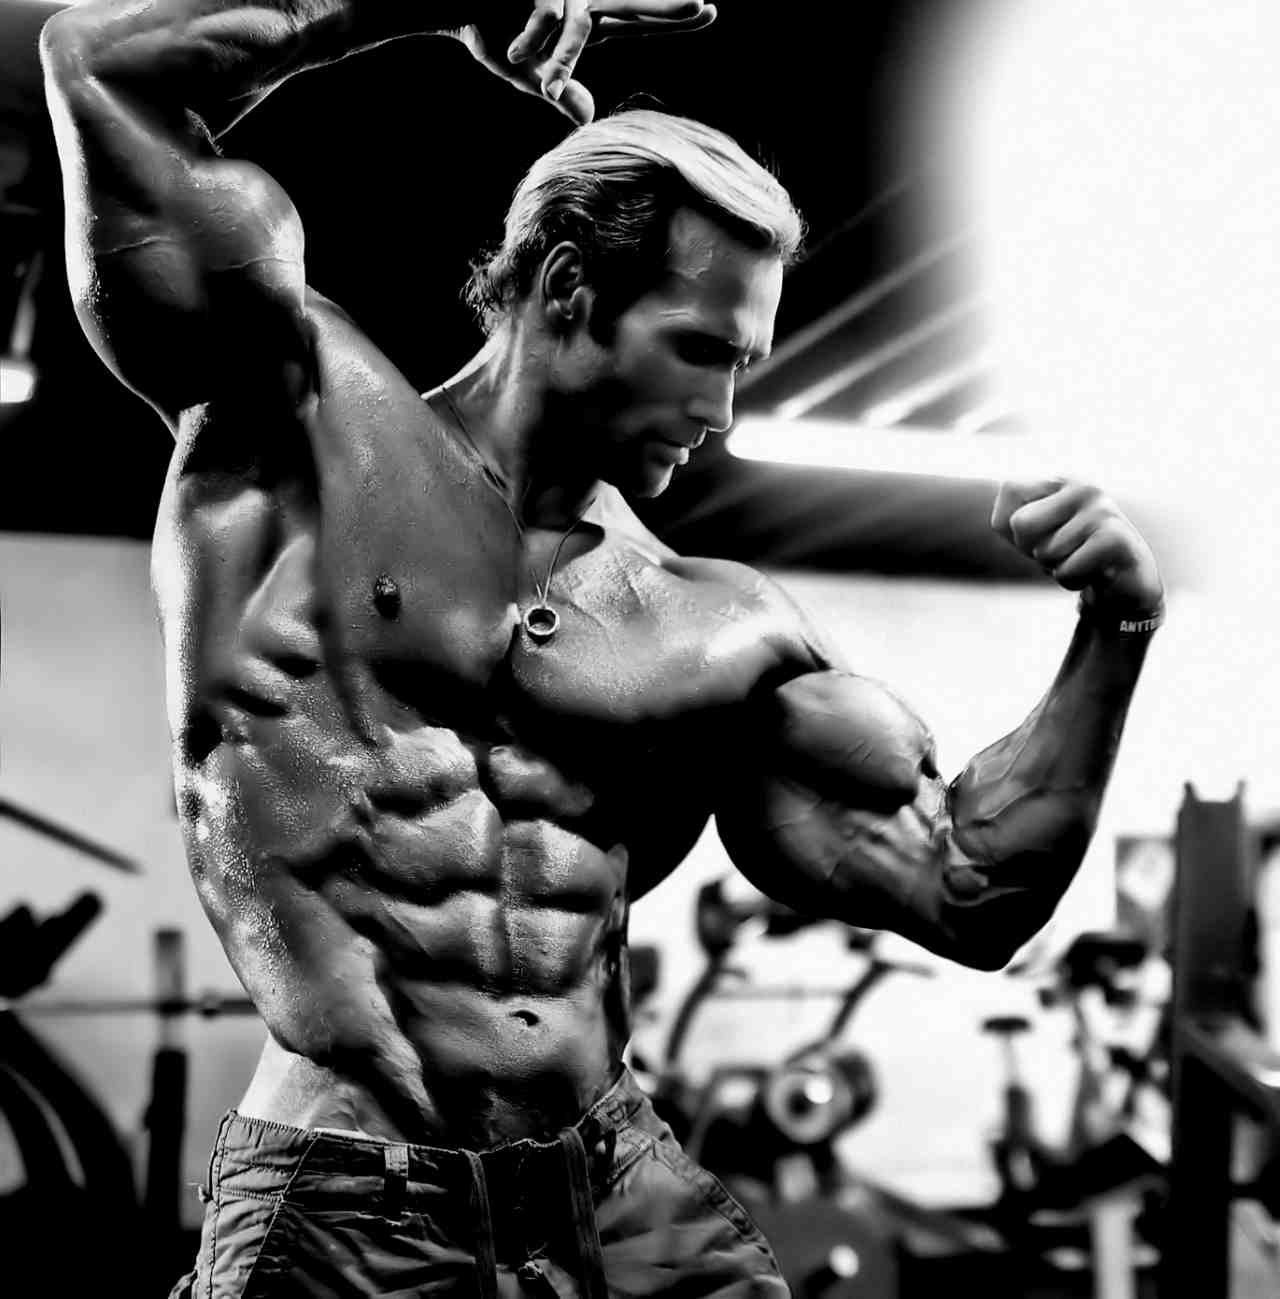 MikeOHearn-IRN-Dec2012-MichaelNeveux-649JJ-B